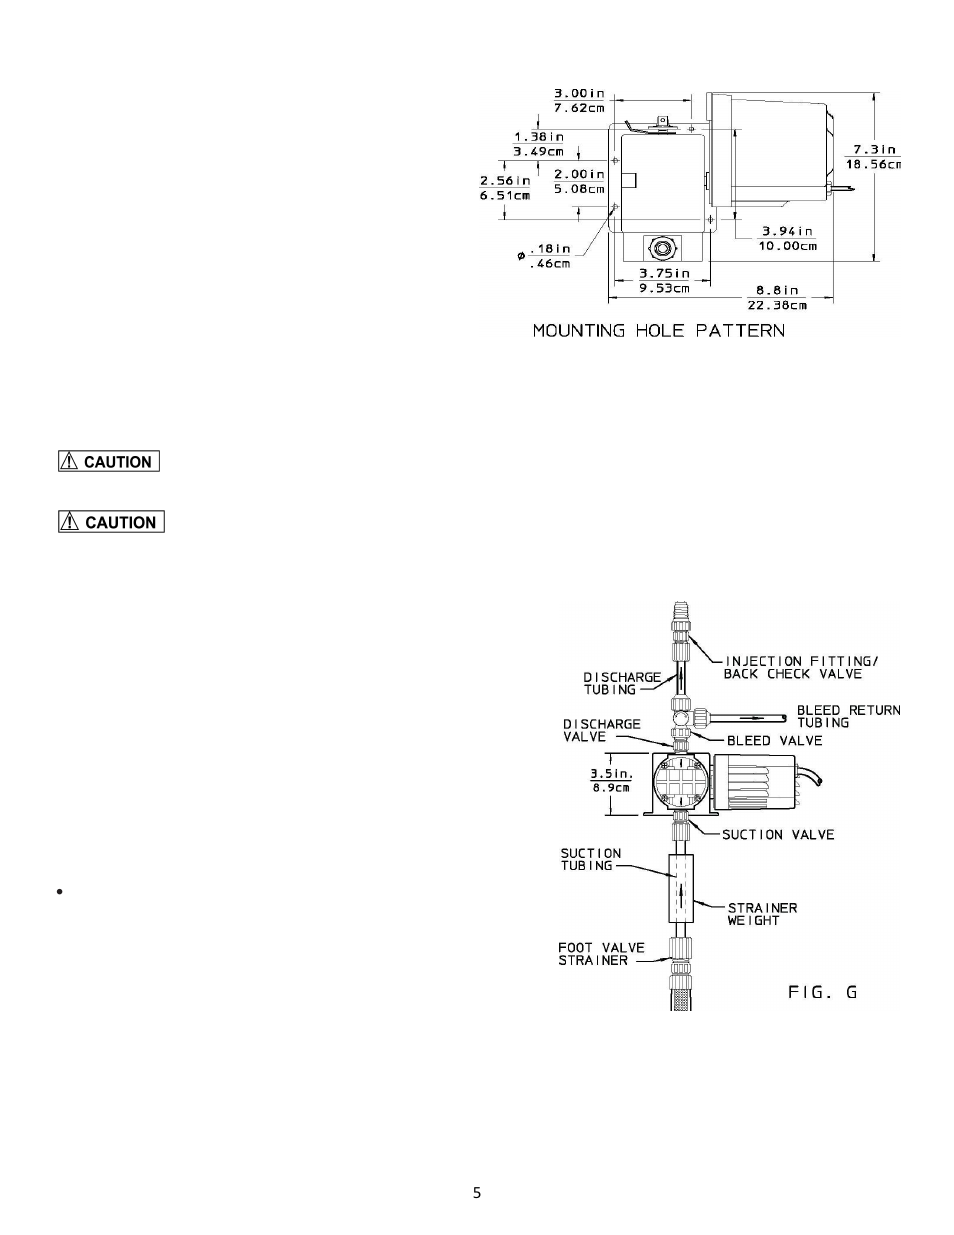 Pulsafeeder Chem-Tech Series 100-150 User Manual   Page 5